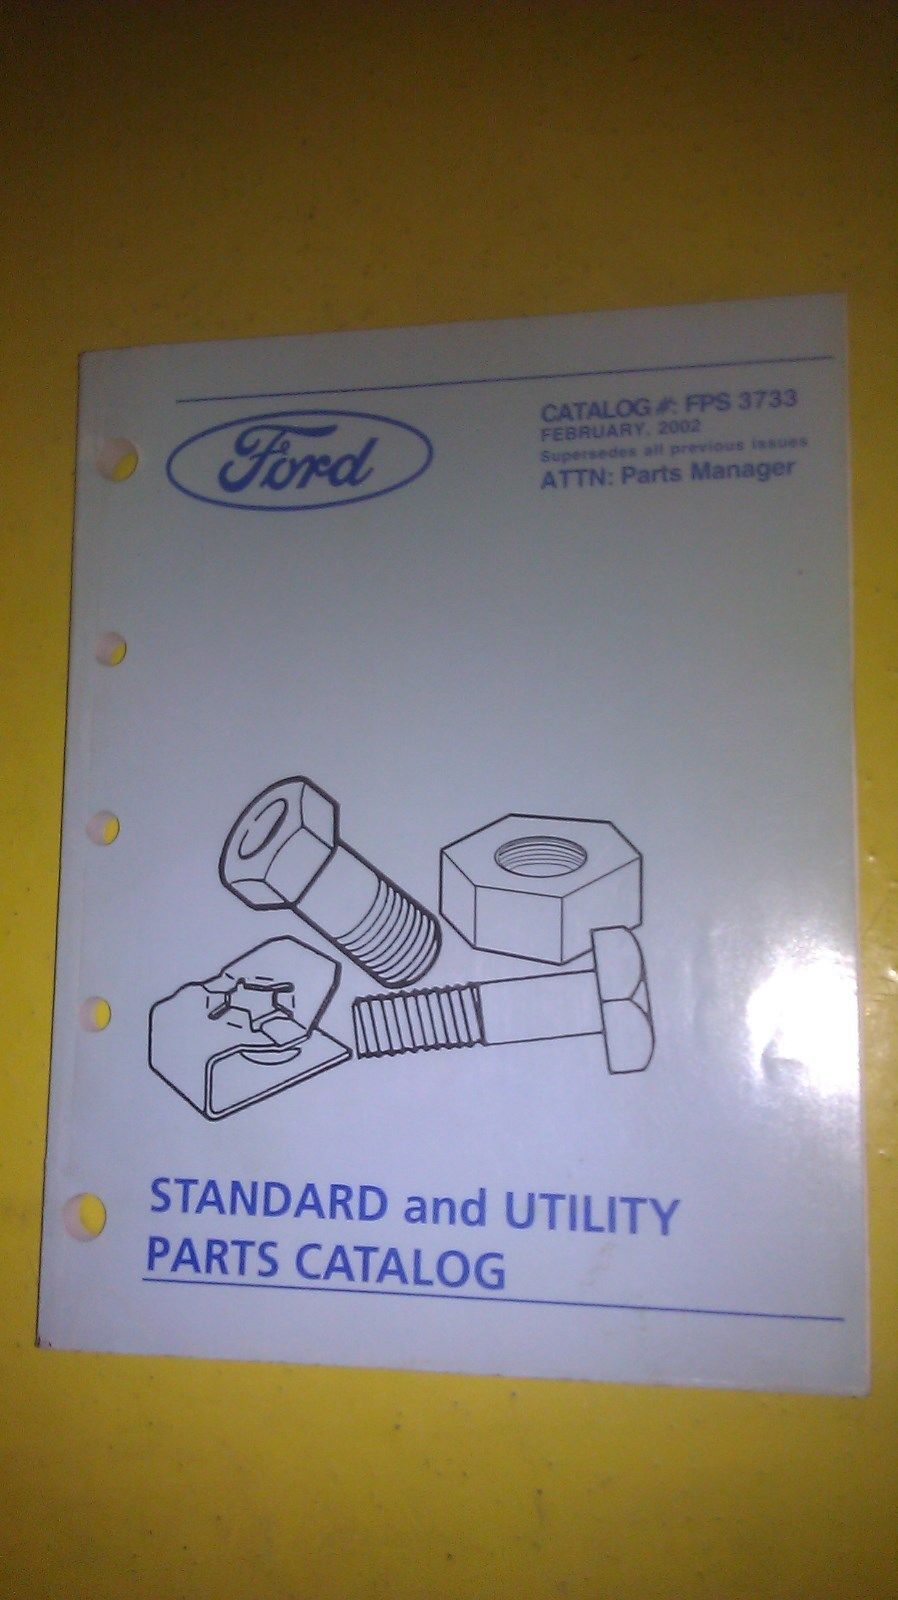 GENUINE FORD STANDARD AND UTILITY PARTS CATALOG FPS3733 ...